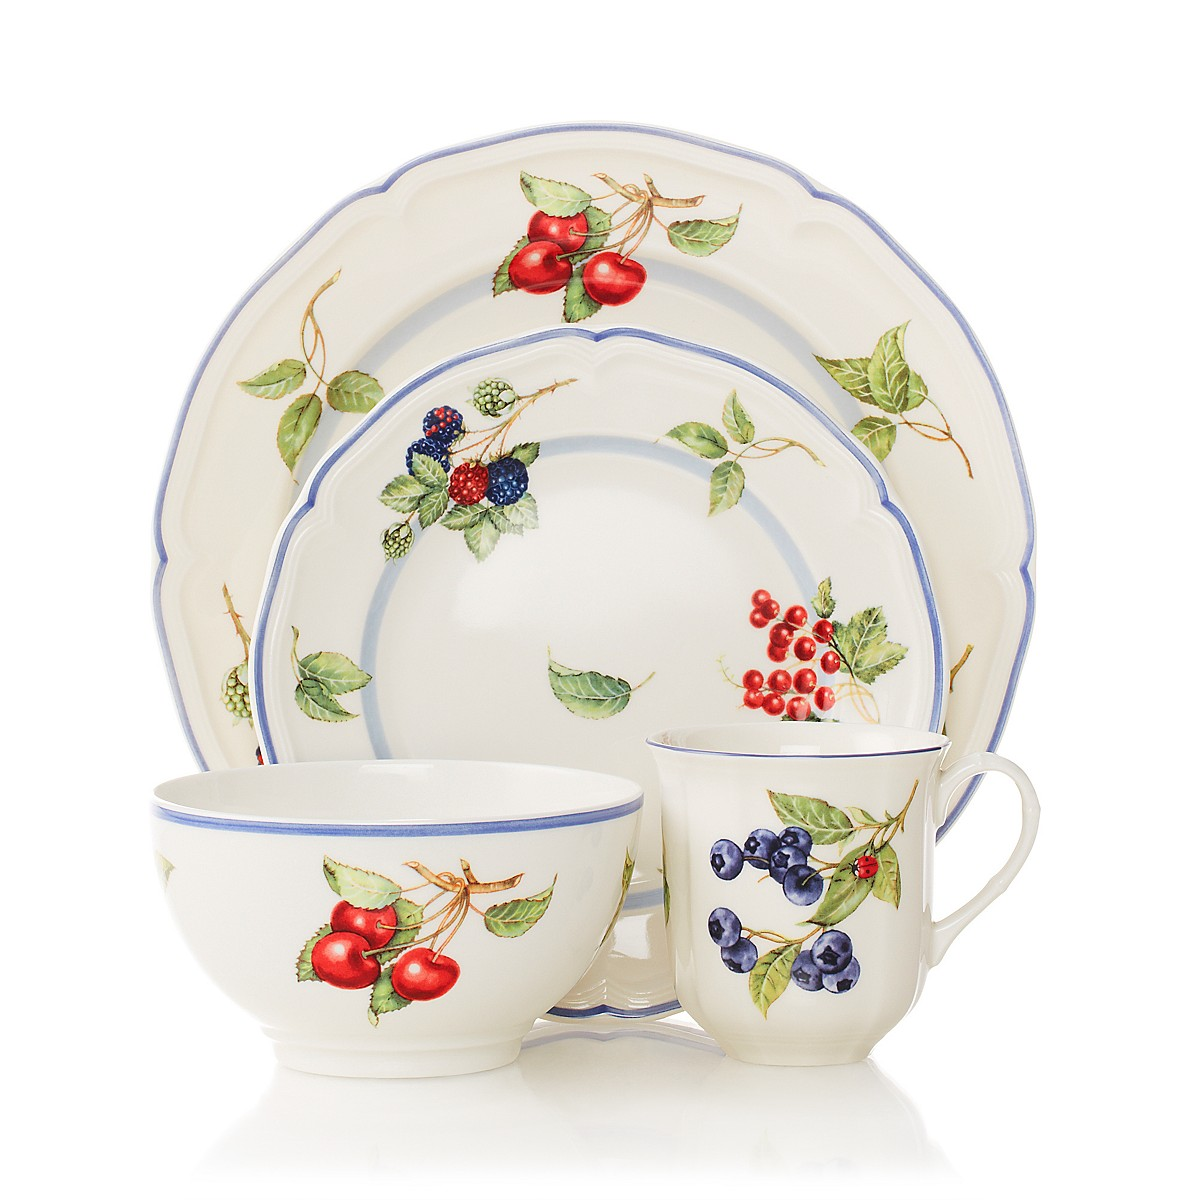 villeroy boch cottage dinnerware bloomingdale 39 s. Black Bedroom Furniture Sets. Home Design Ideas